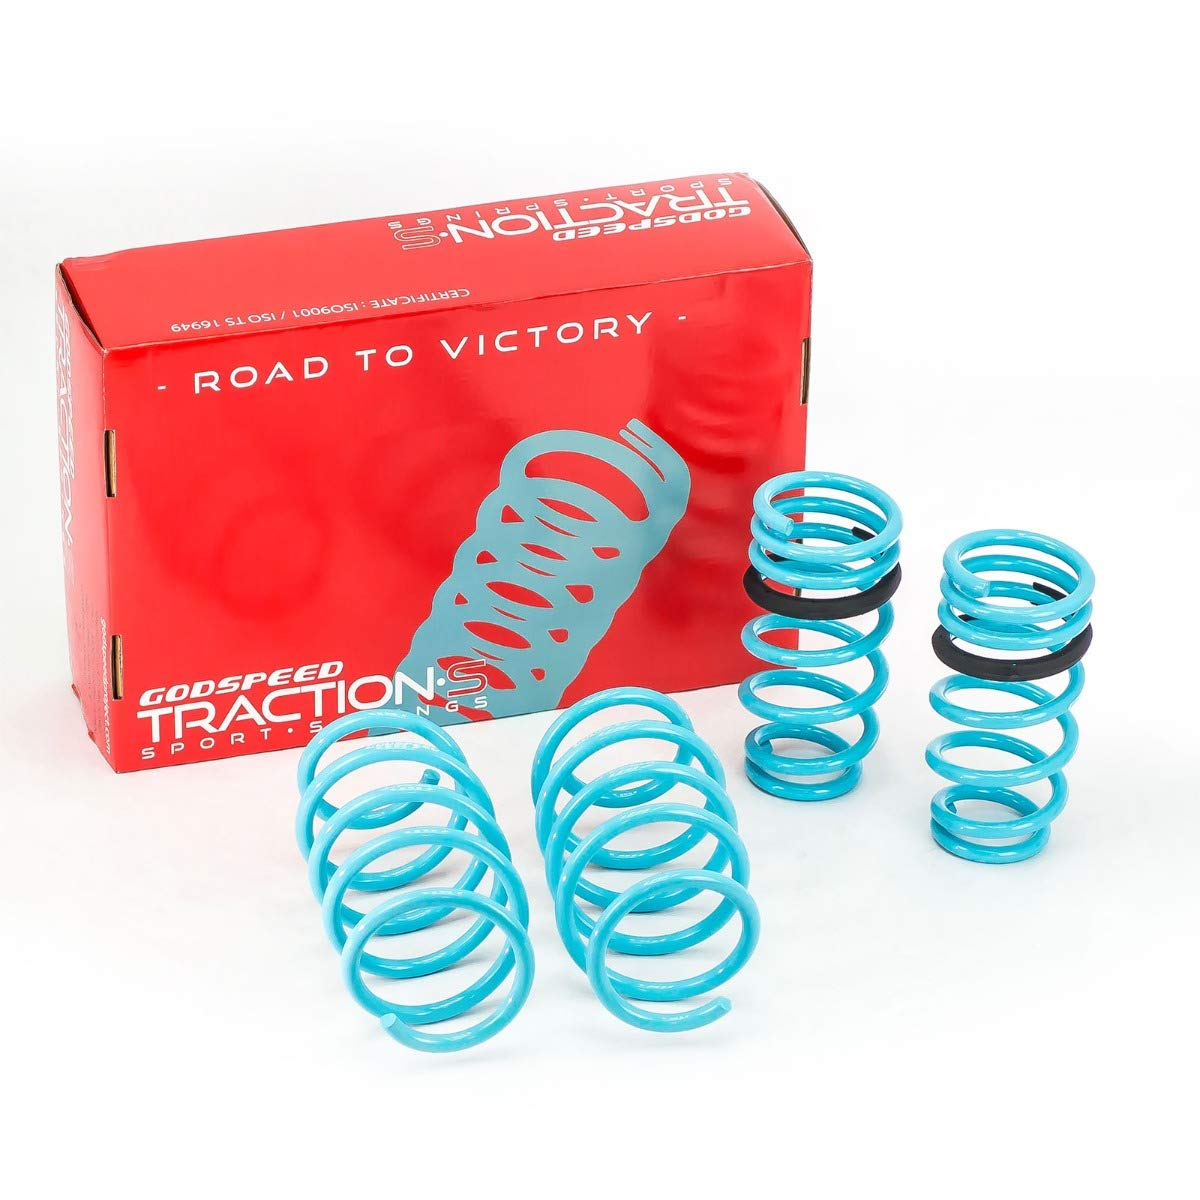 RE LS-TS-HA-0012 Traction-S Performance Lowering Springs for Honda CR-V 2007-2011